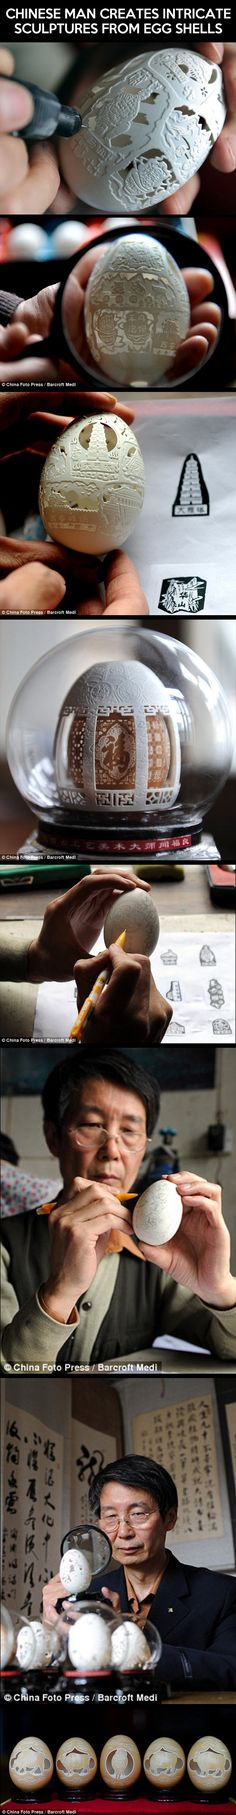 Intricate sculptures from egg shells…